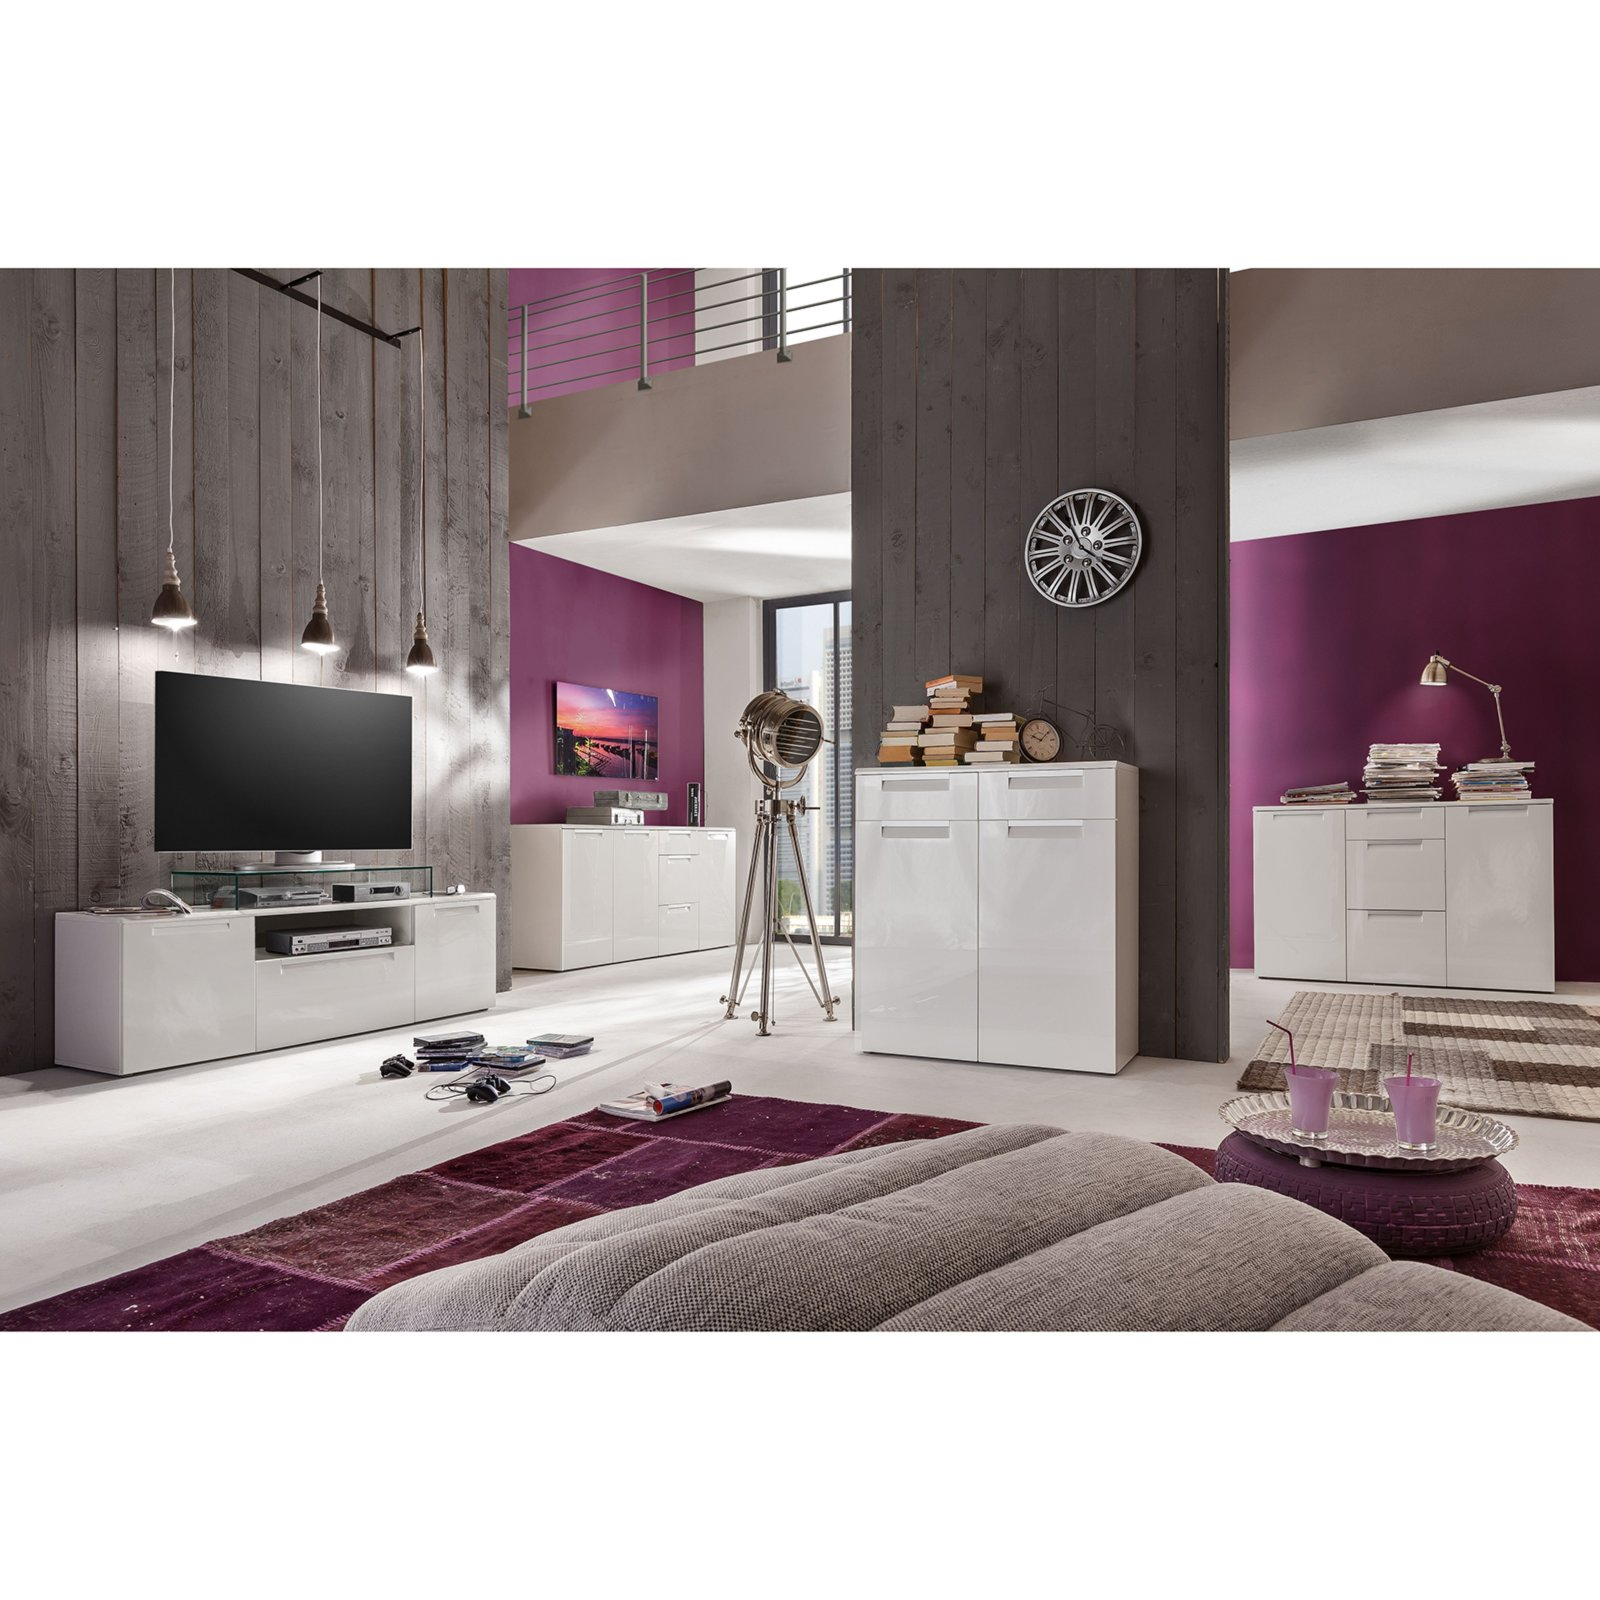 65 wohnzimmer kommode roller full size of uncategorizedkhles wohnzimmer mobel weis mit. Black Bedroom Furniture Sets. Home Design Ideas